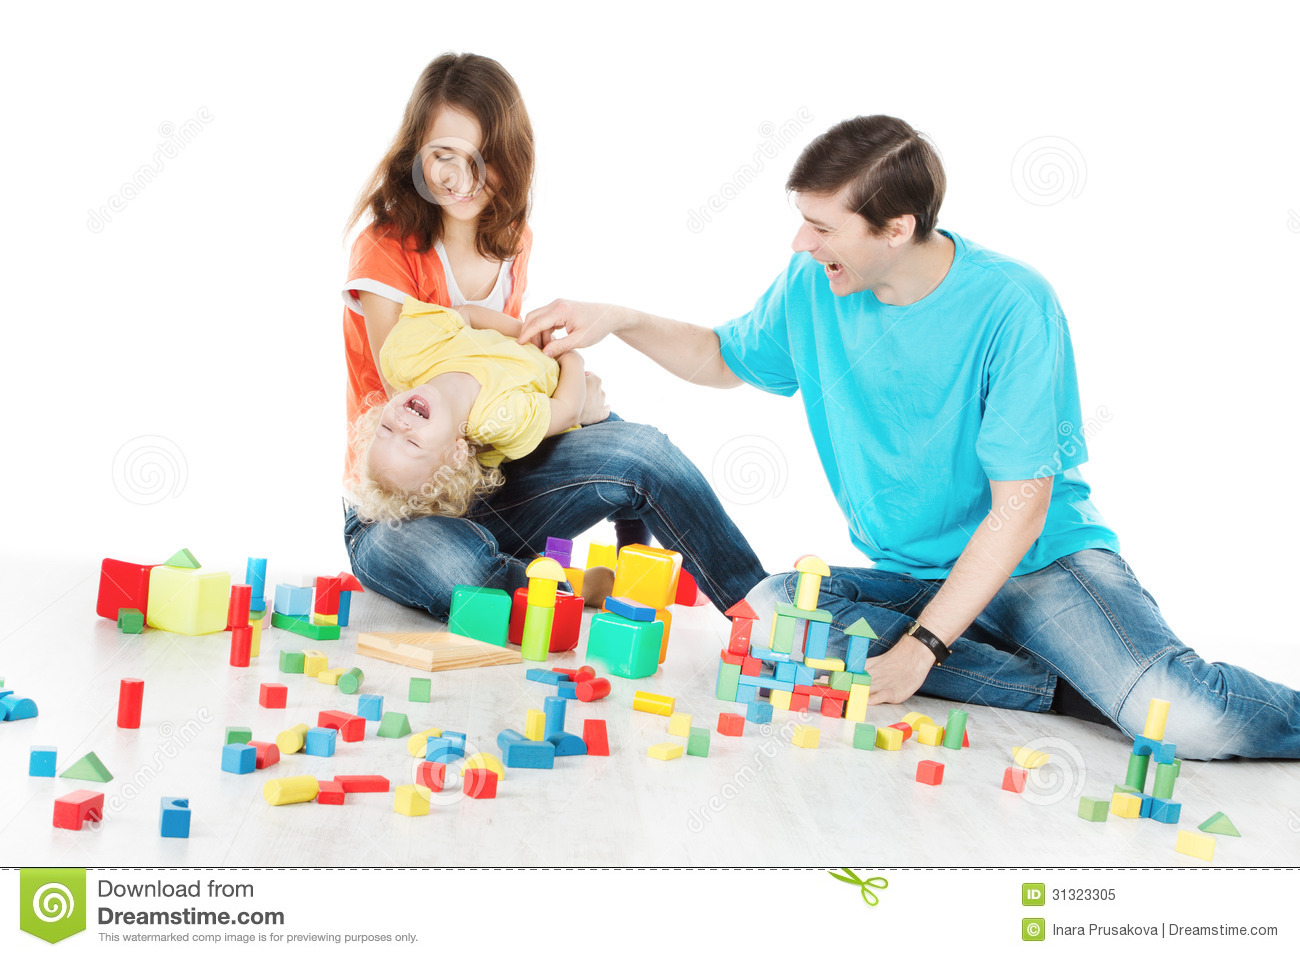 Toys For Parents : Happy family parents playing toys blocks with child stock